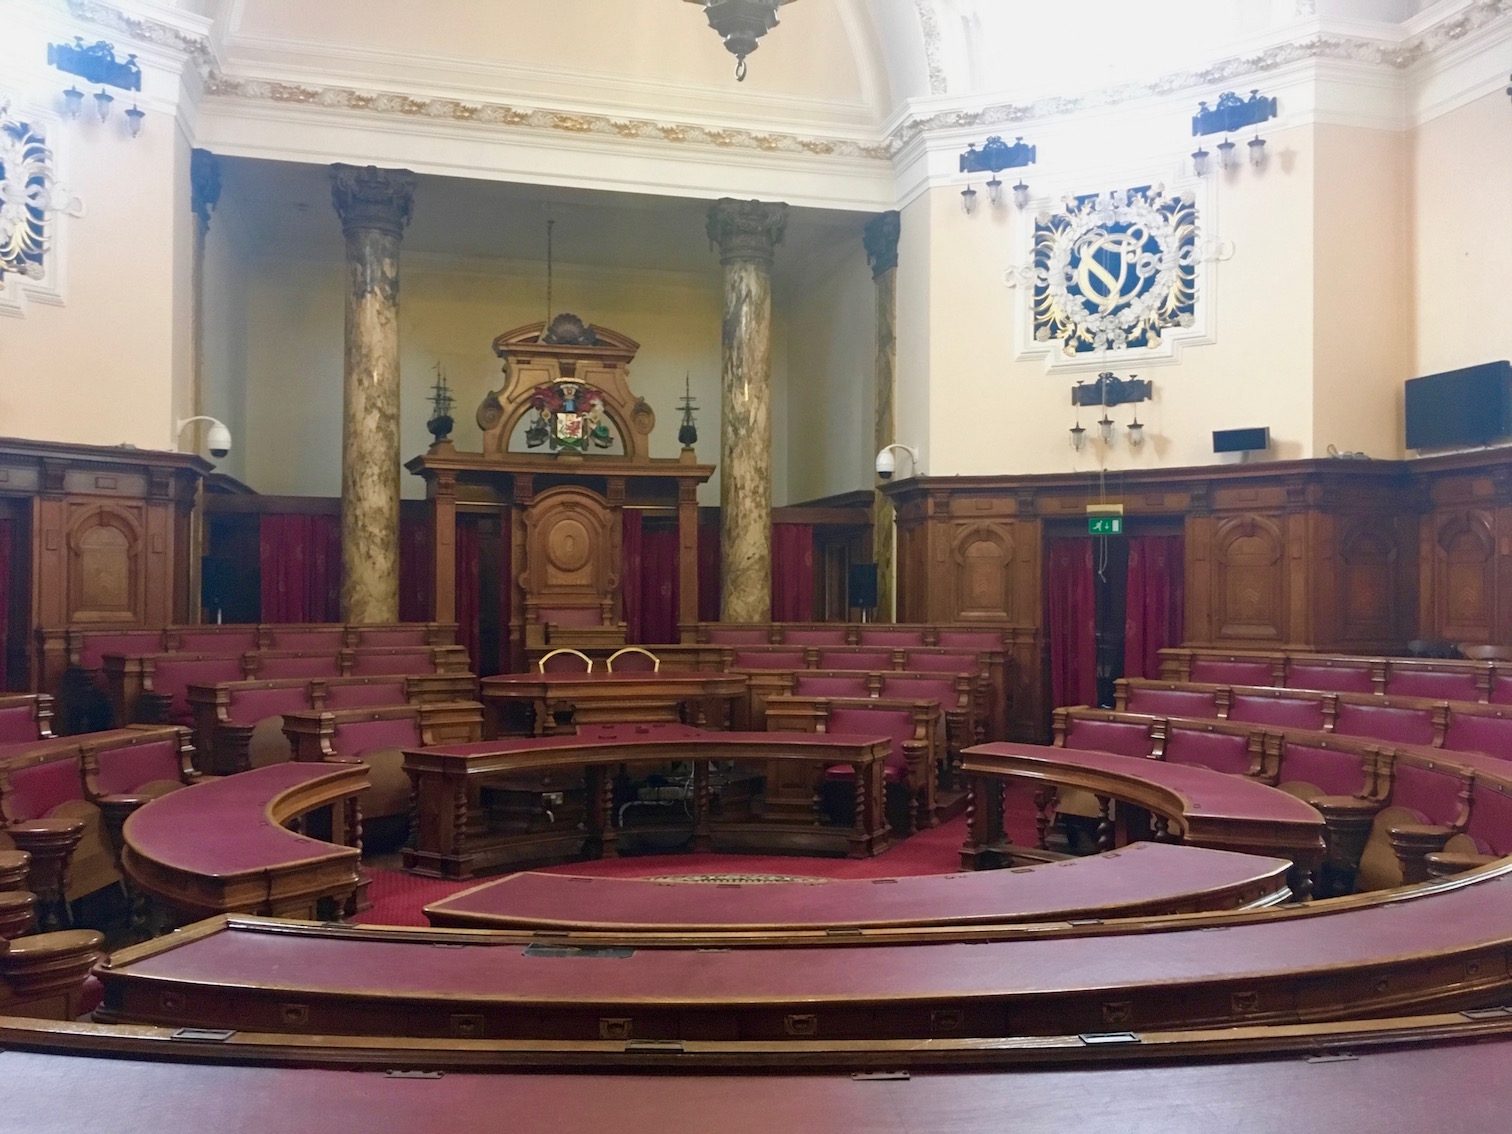 The council chamber at Cardiff City Hall